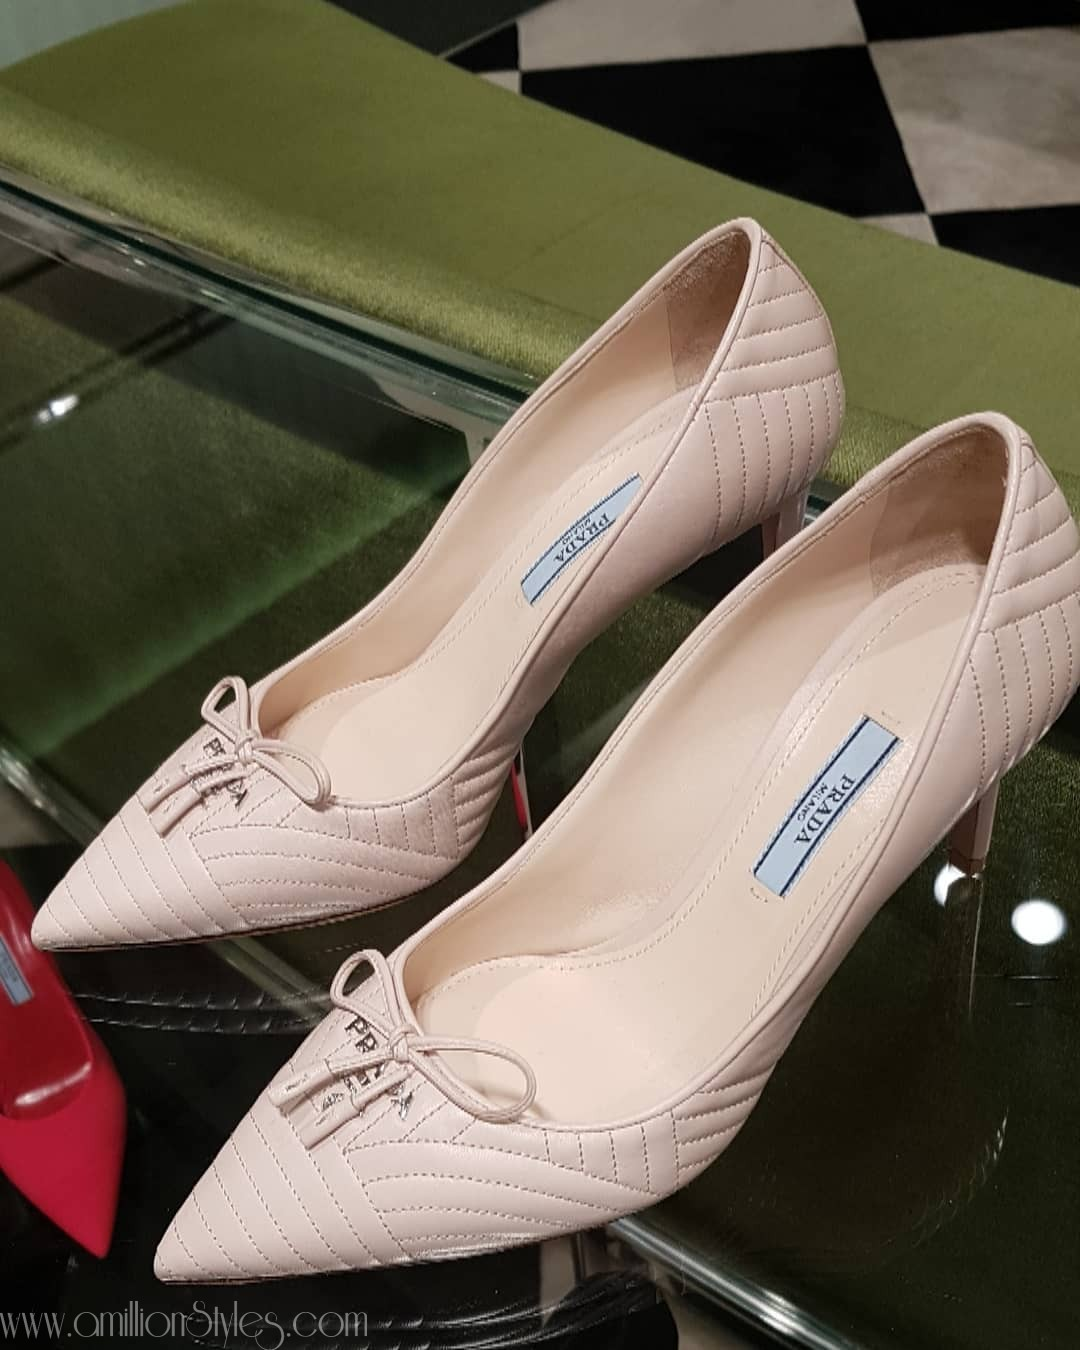 12 Work Wear Designer Pumps/Slingback Shoes For The Corporate Chic